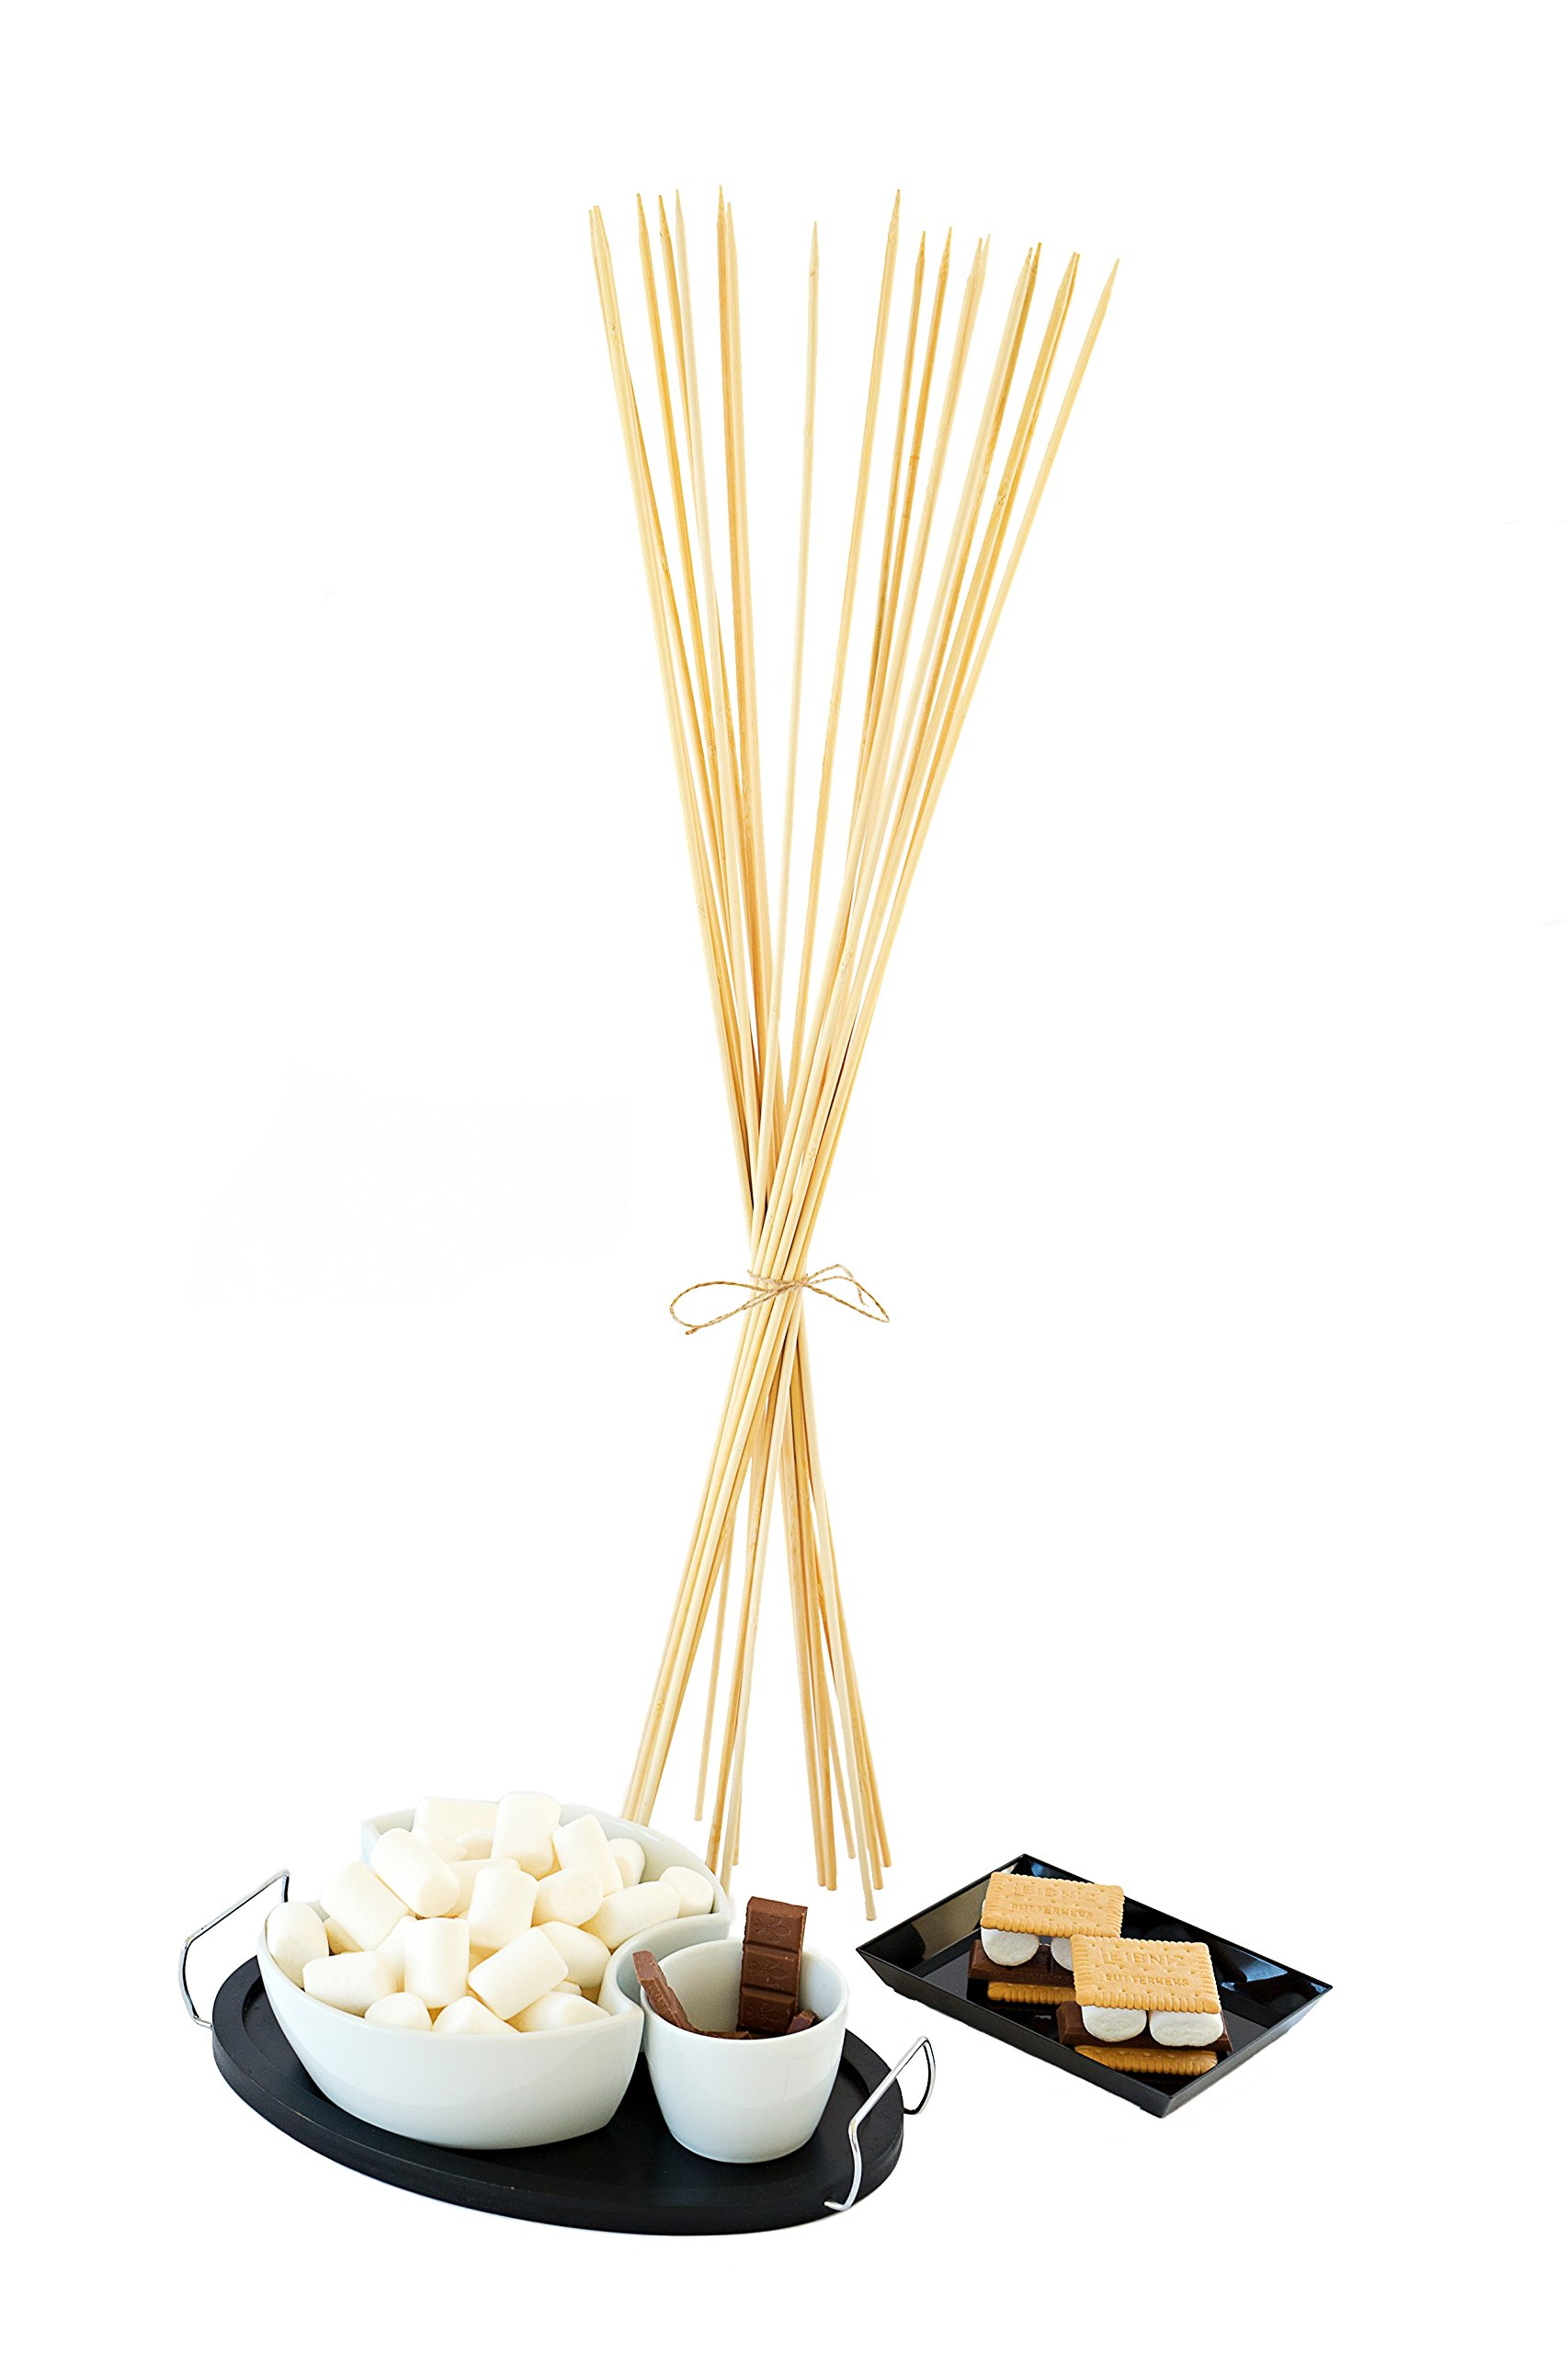 "Topie Marshmallow Roasting Sticks Bamboo Stix Smores Skewers 20 Pieces Set For Camping Cookware Campfire, Party, Bbq, Woden Accesories Hot Dog Fire Pit, Size 5mm 32"" Inches & Roasting Ebook"